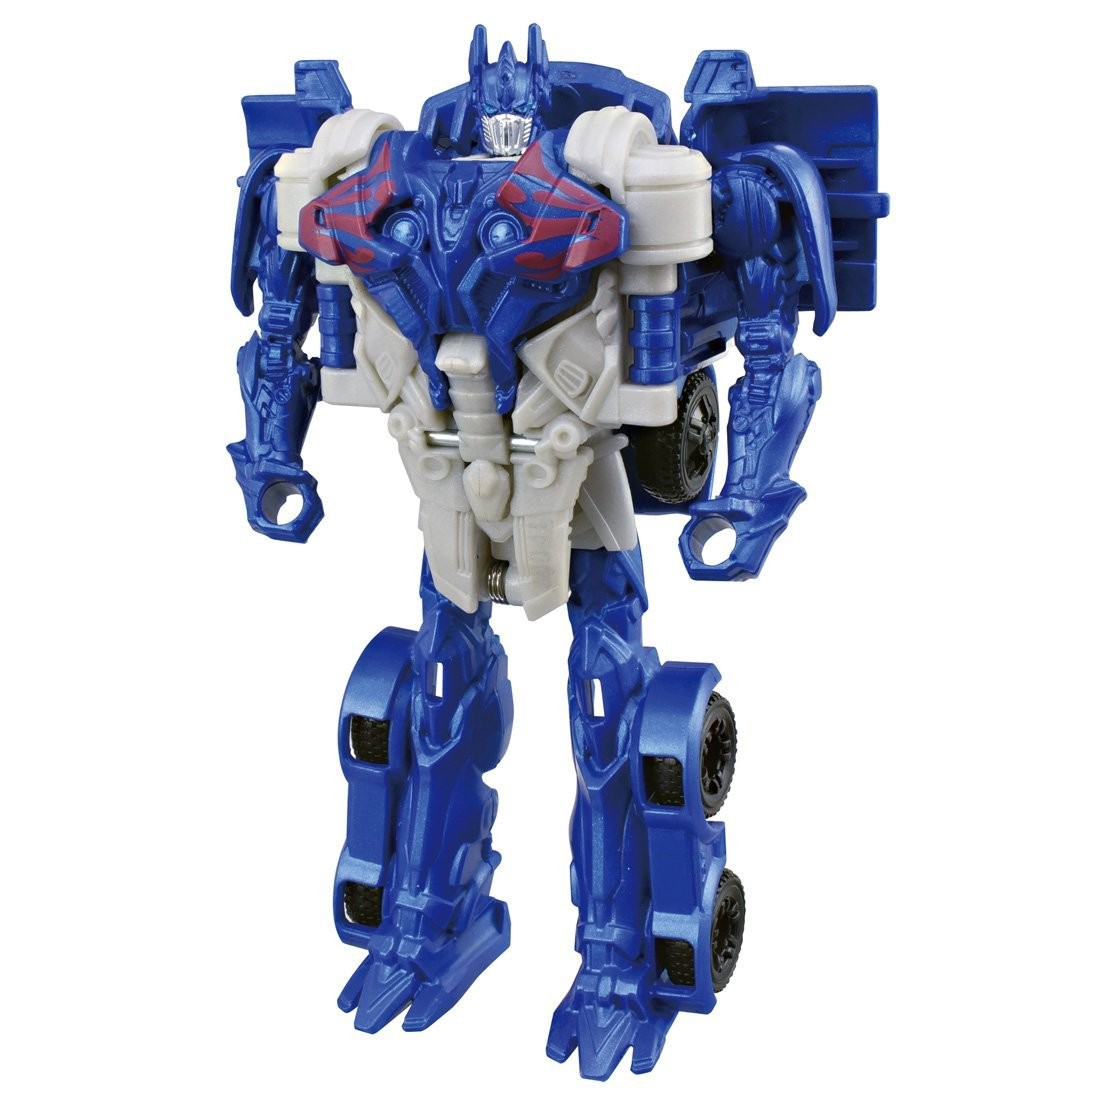 Transformers News: Price and Release Date for Takara Tomy Transformers TC-09 Battle Command Optimus Prime